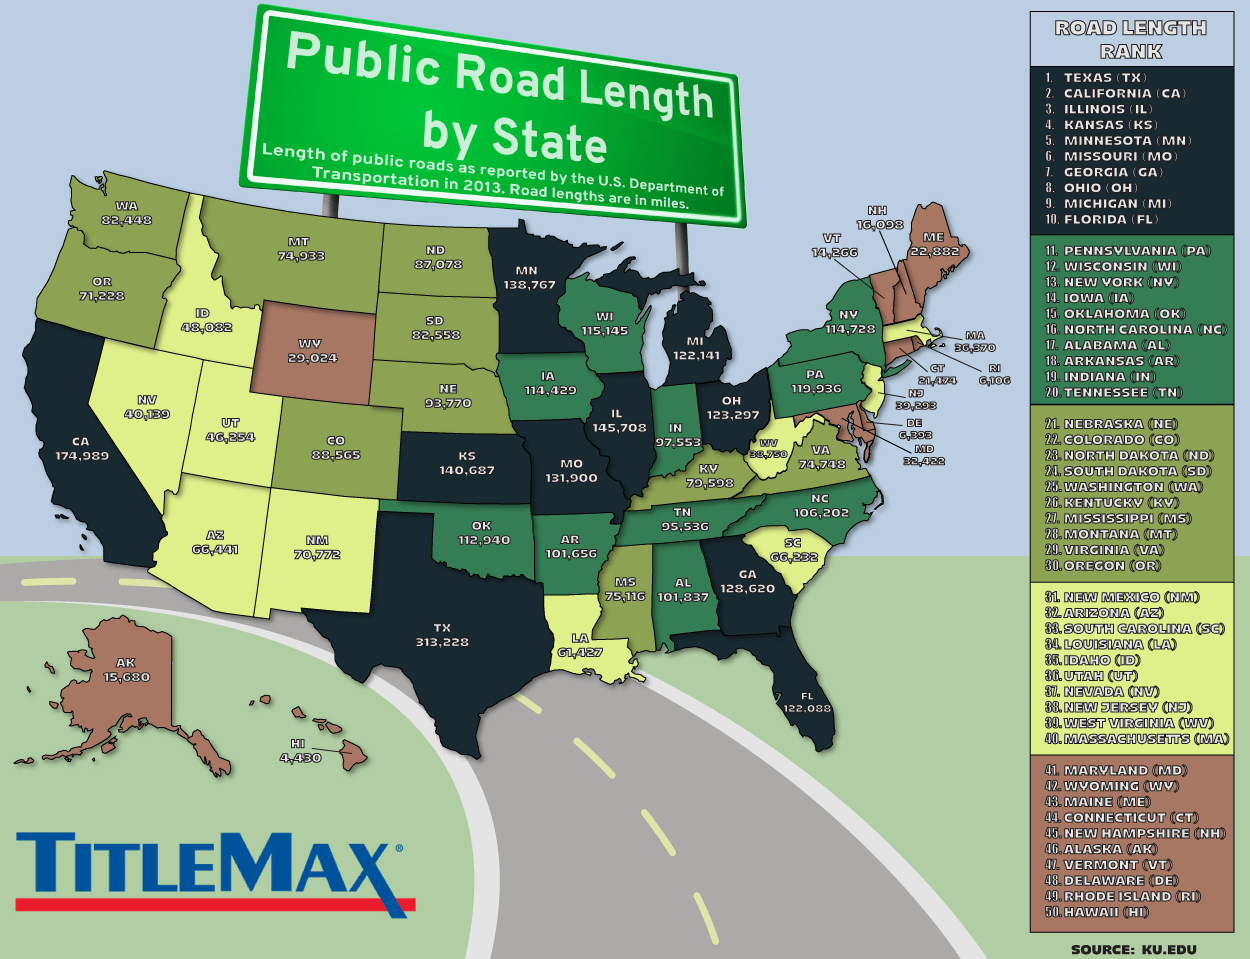 Public Road Length by state